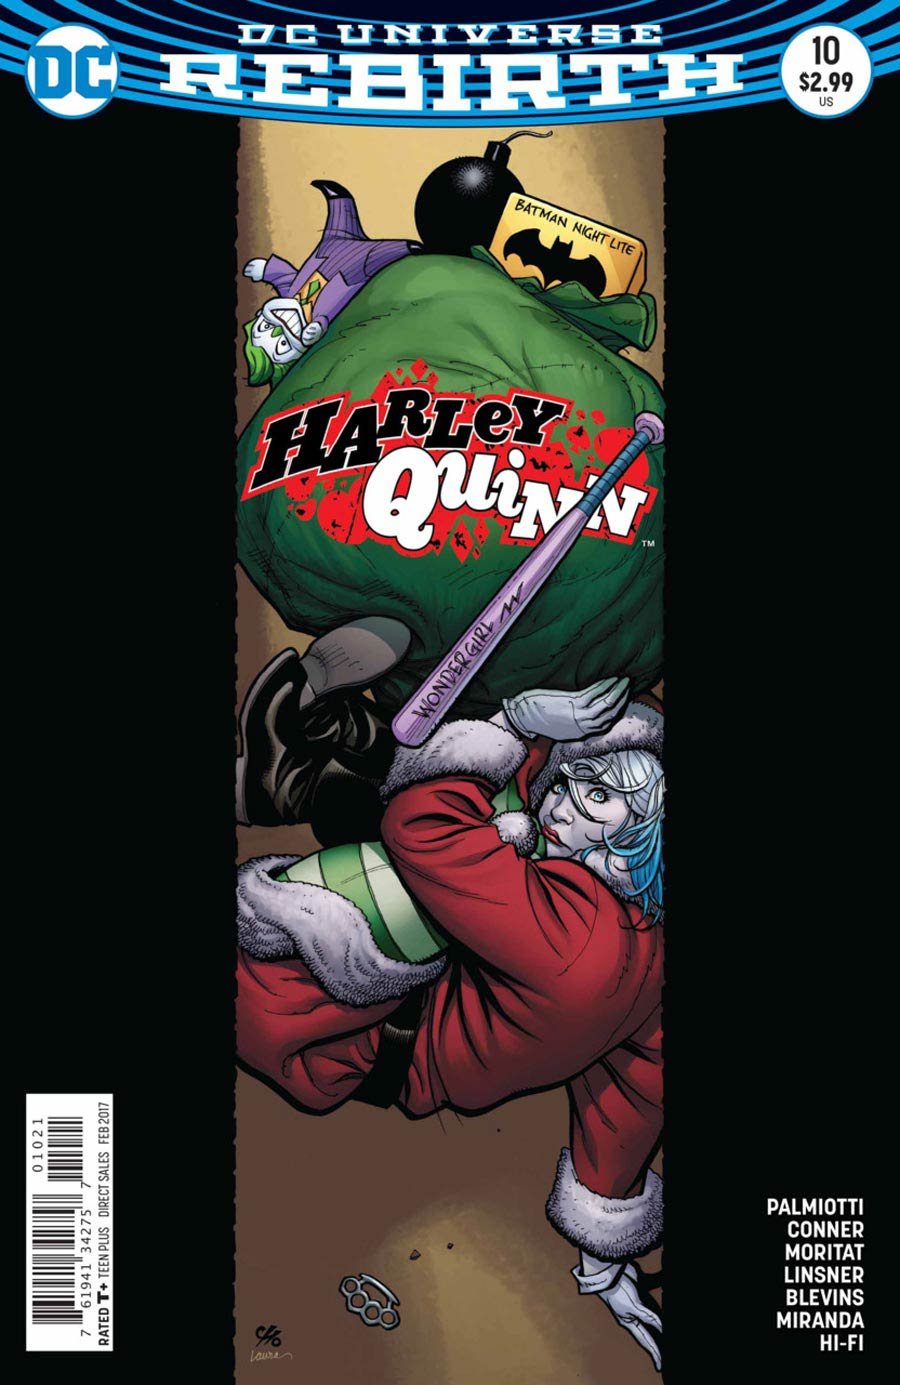 Harley Quinn Vol 3 #10 Cover B Variant Frank Cho Cover